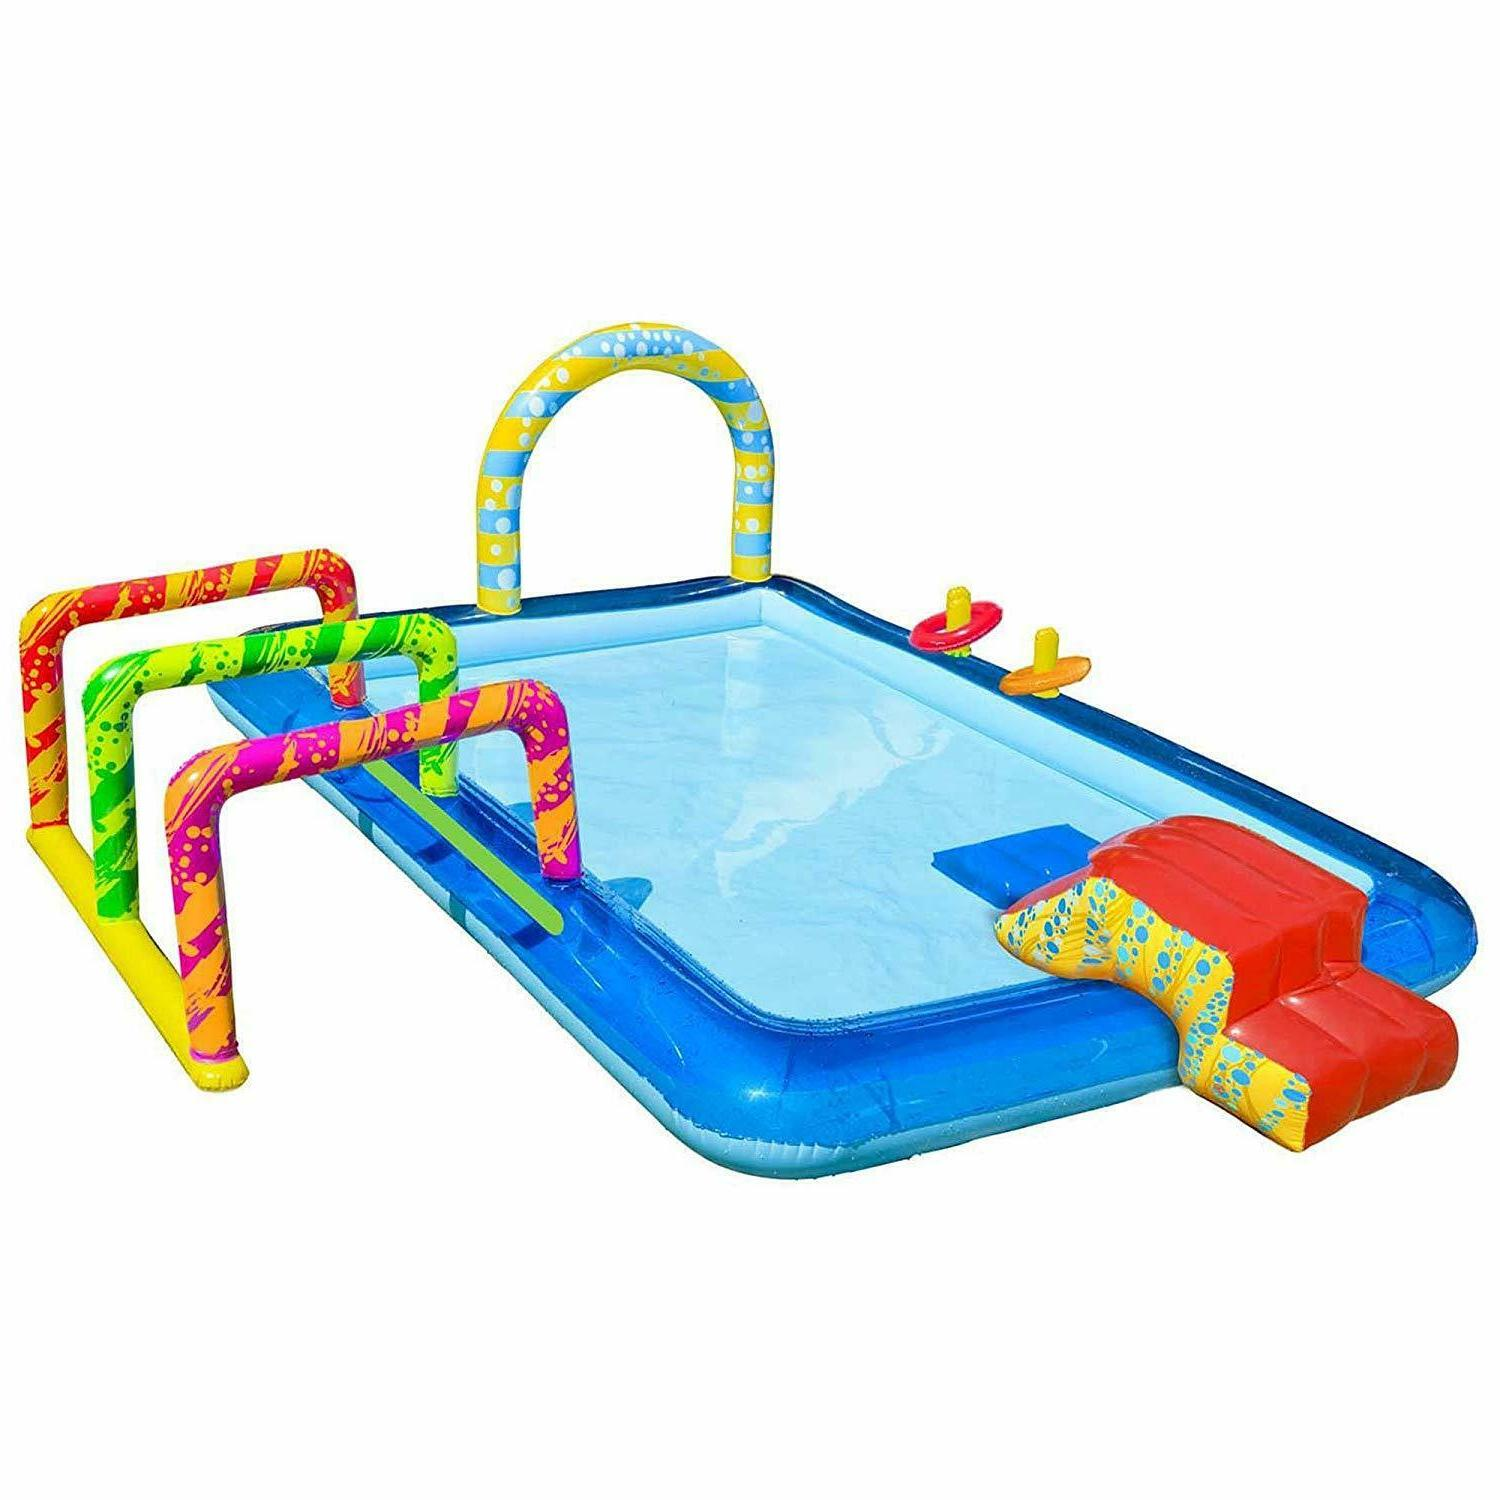 outdoor summer fun for kids party water